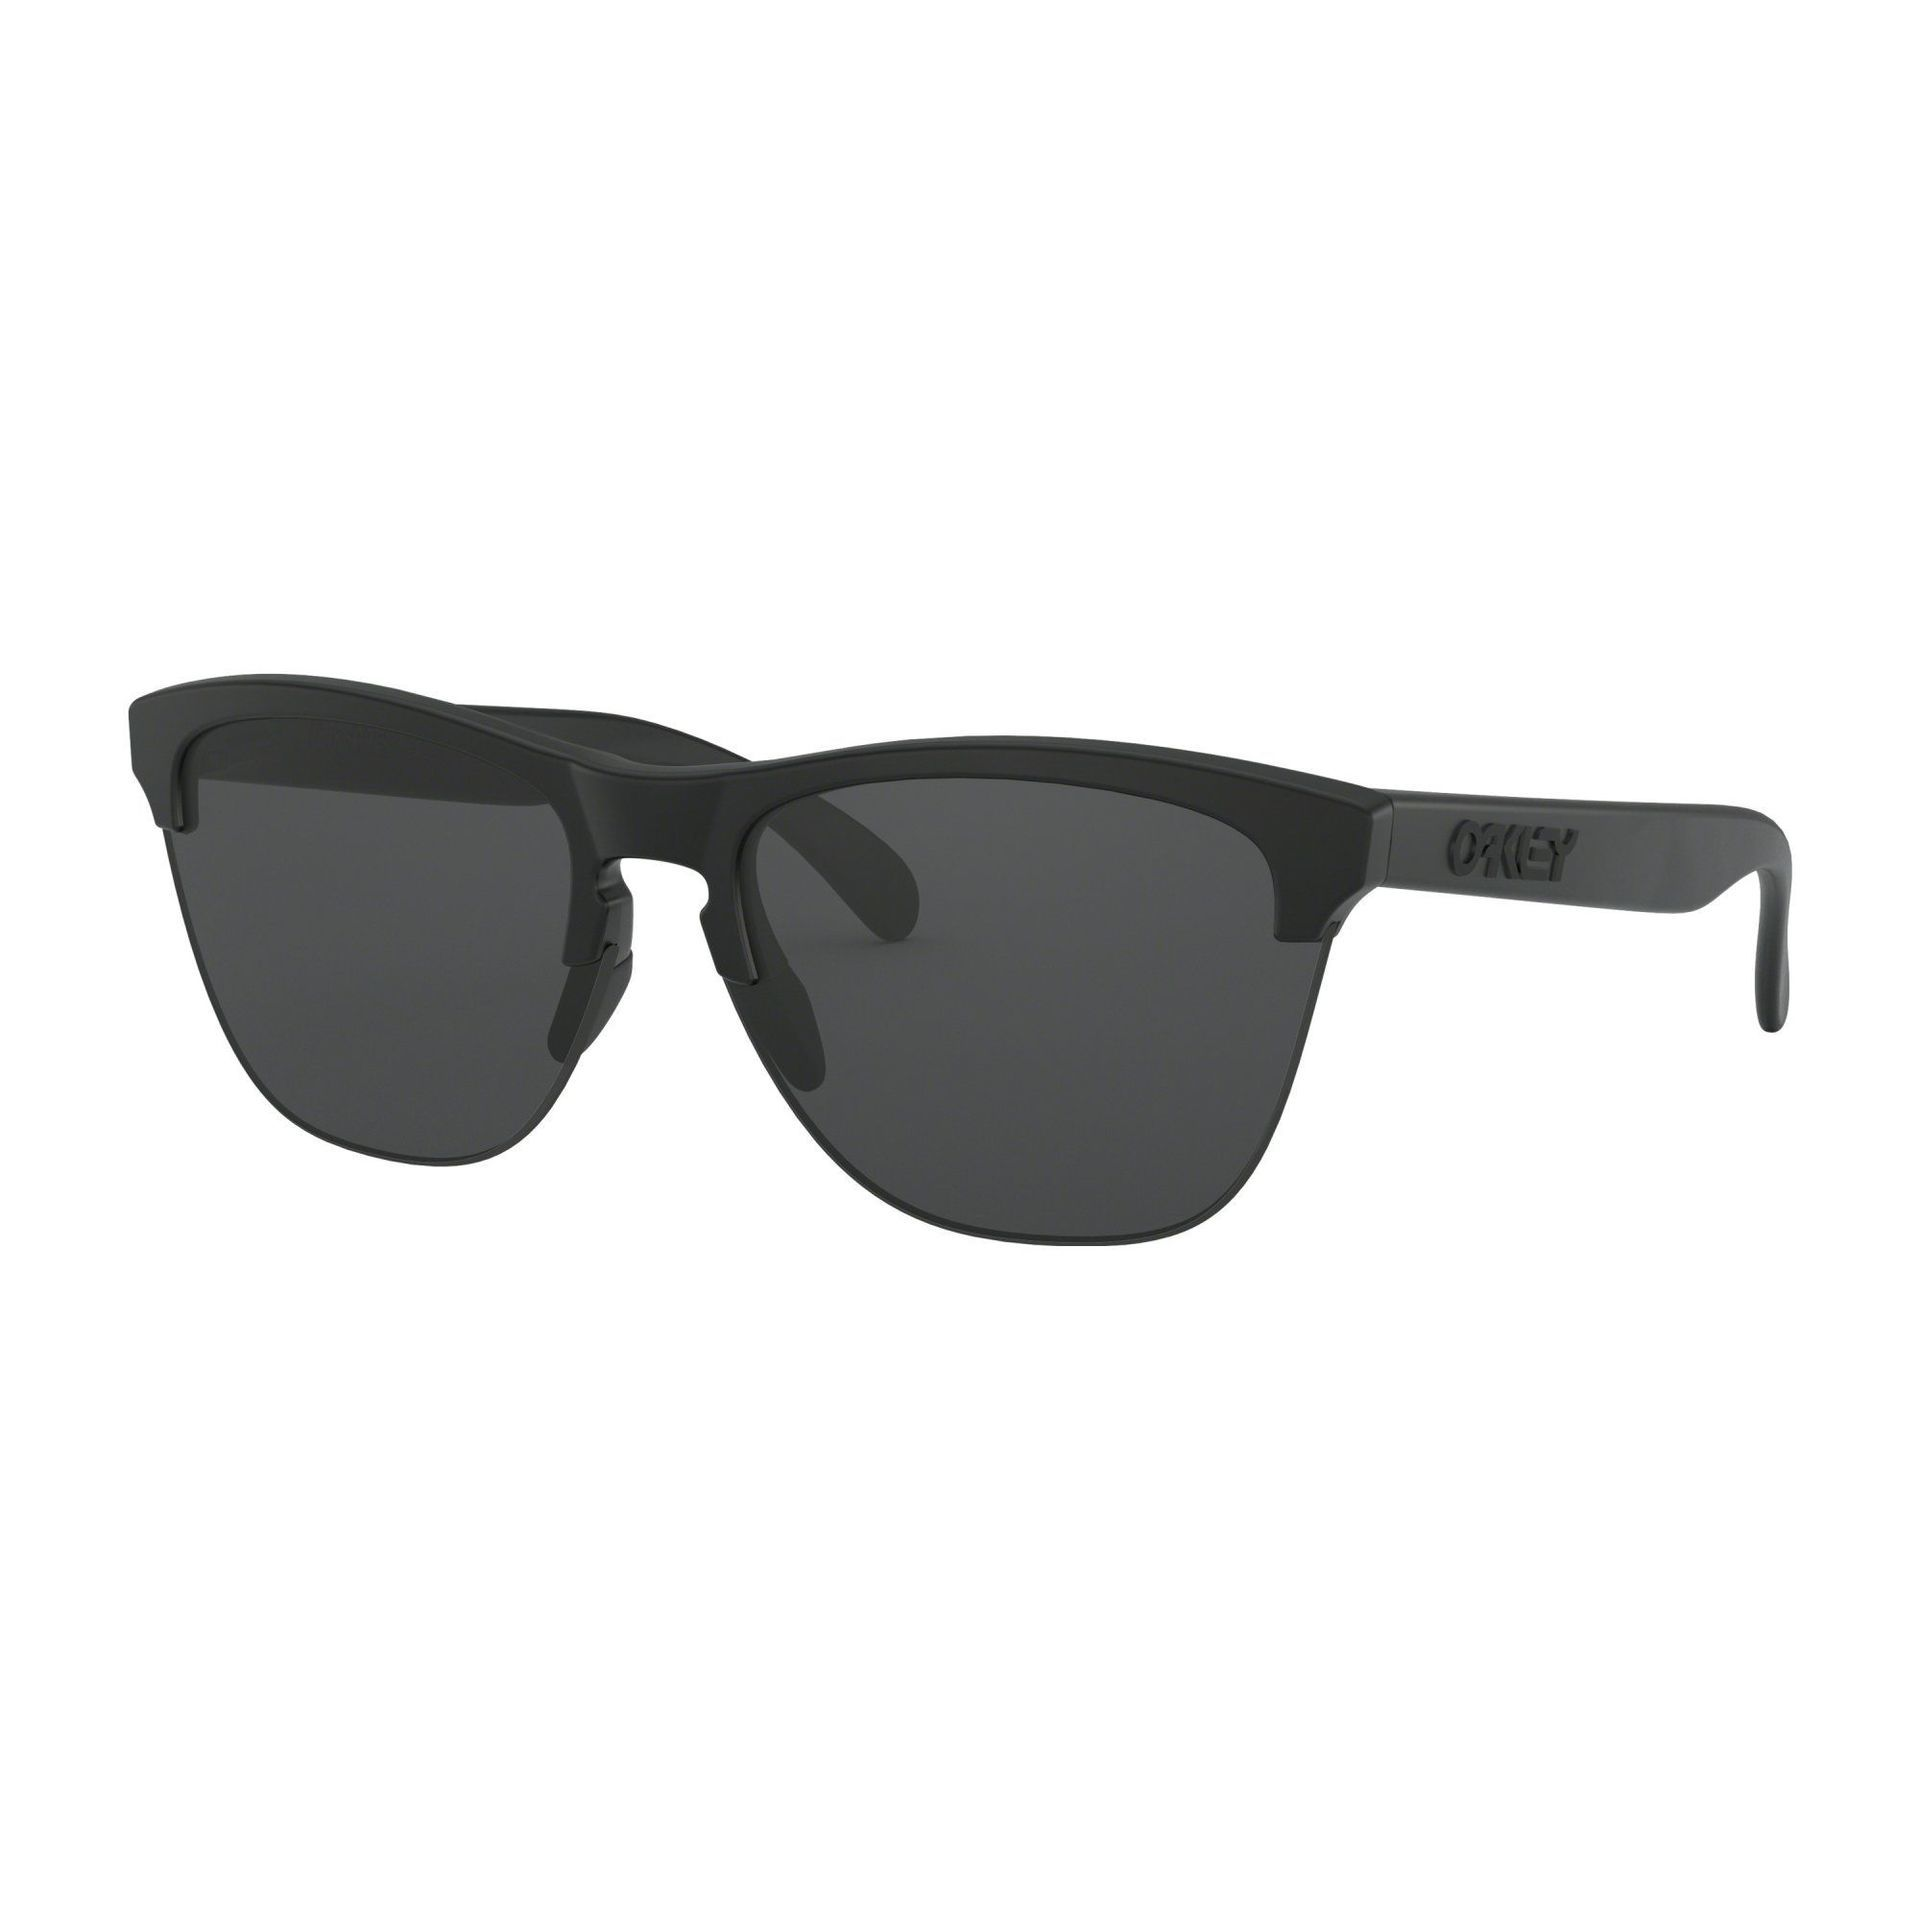 OKULARY OAKLEY FROGSKINS LITE MATTE BLACK|GREY 1